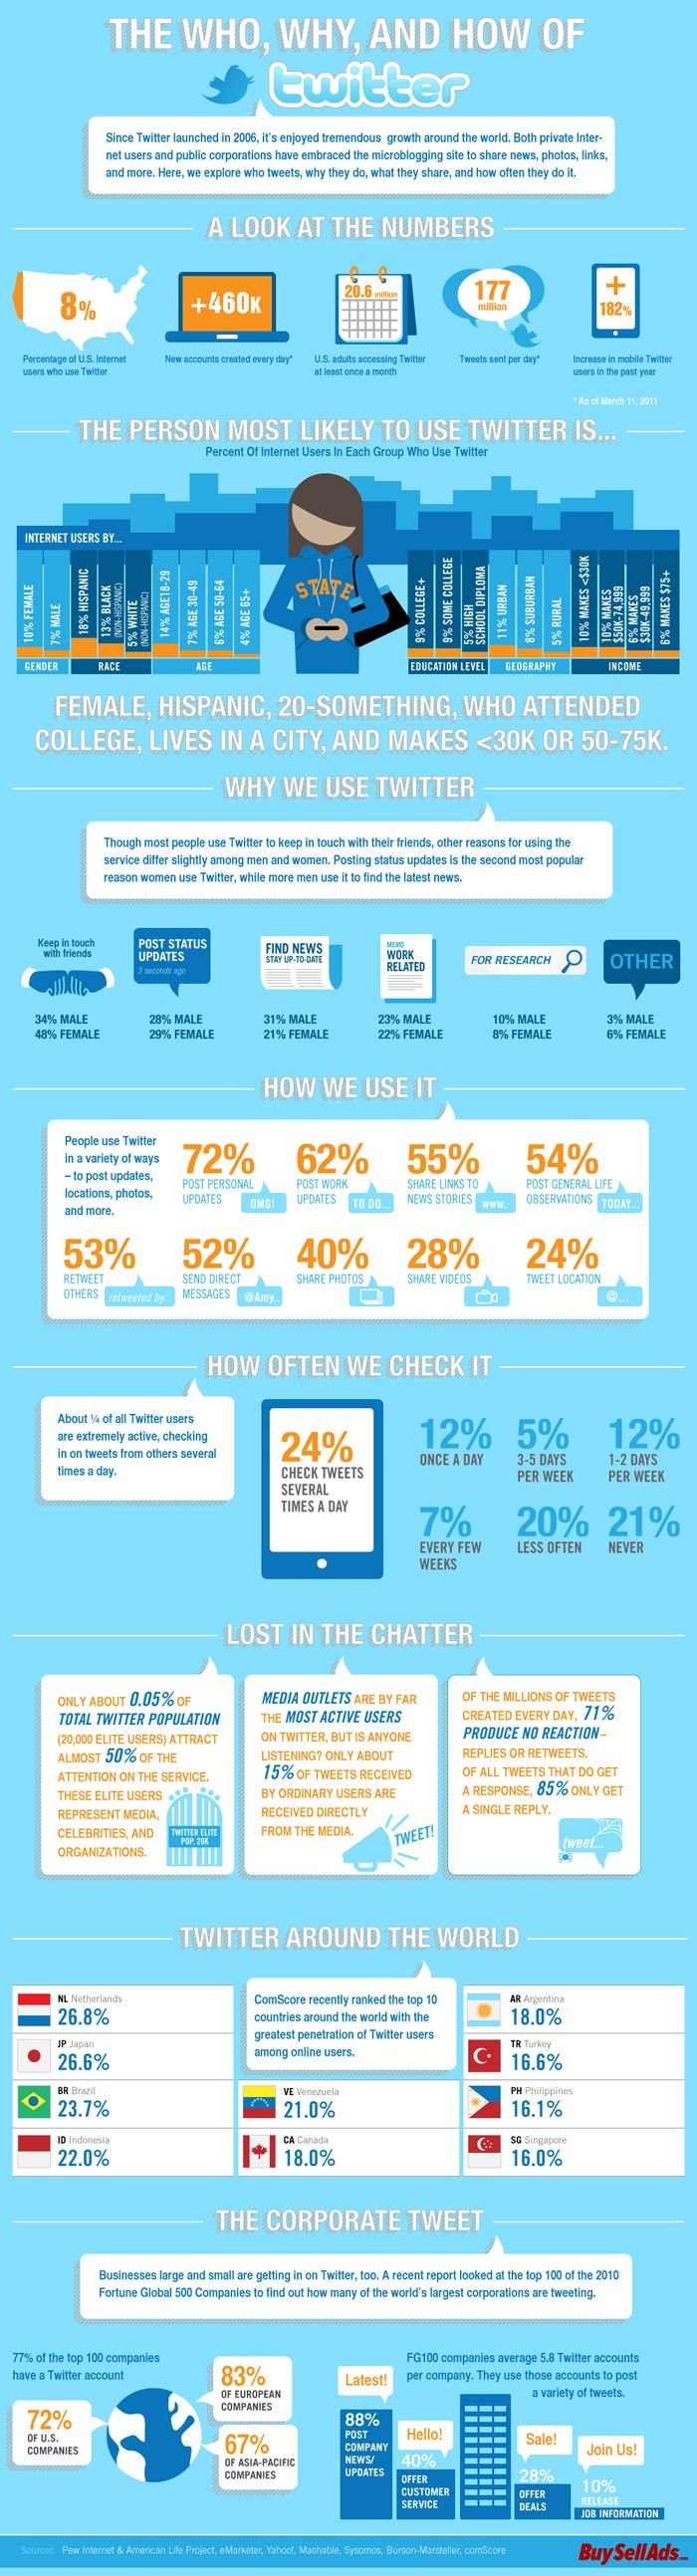 Worldwide Twitter info graphics  I don't really tweet so maybe this will make me do it as a work relatedfunction.